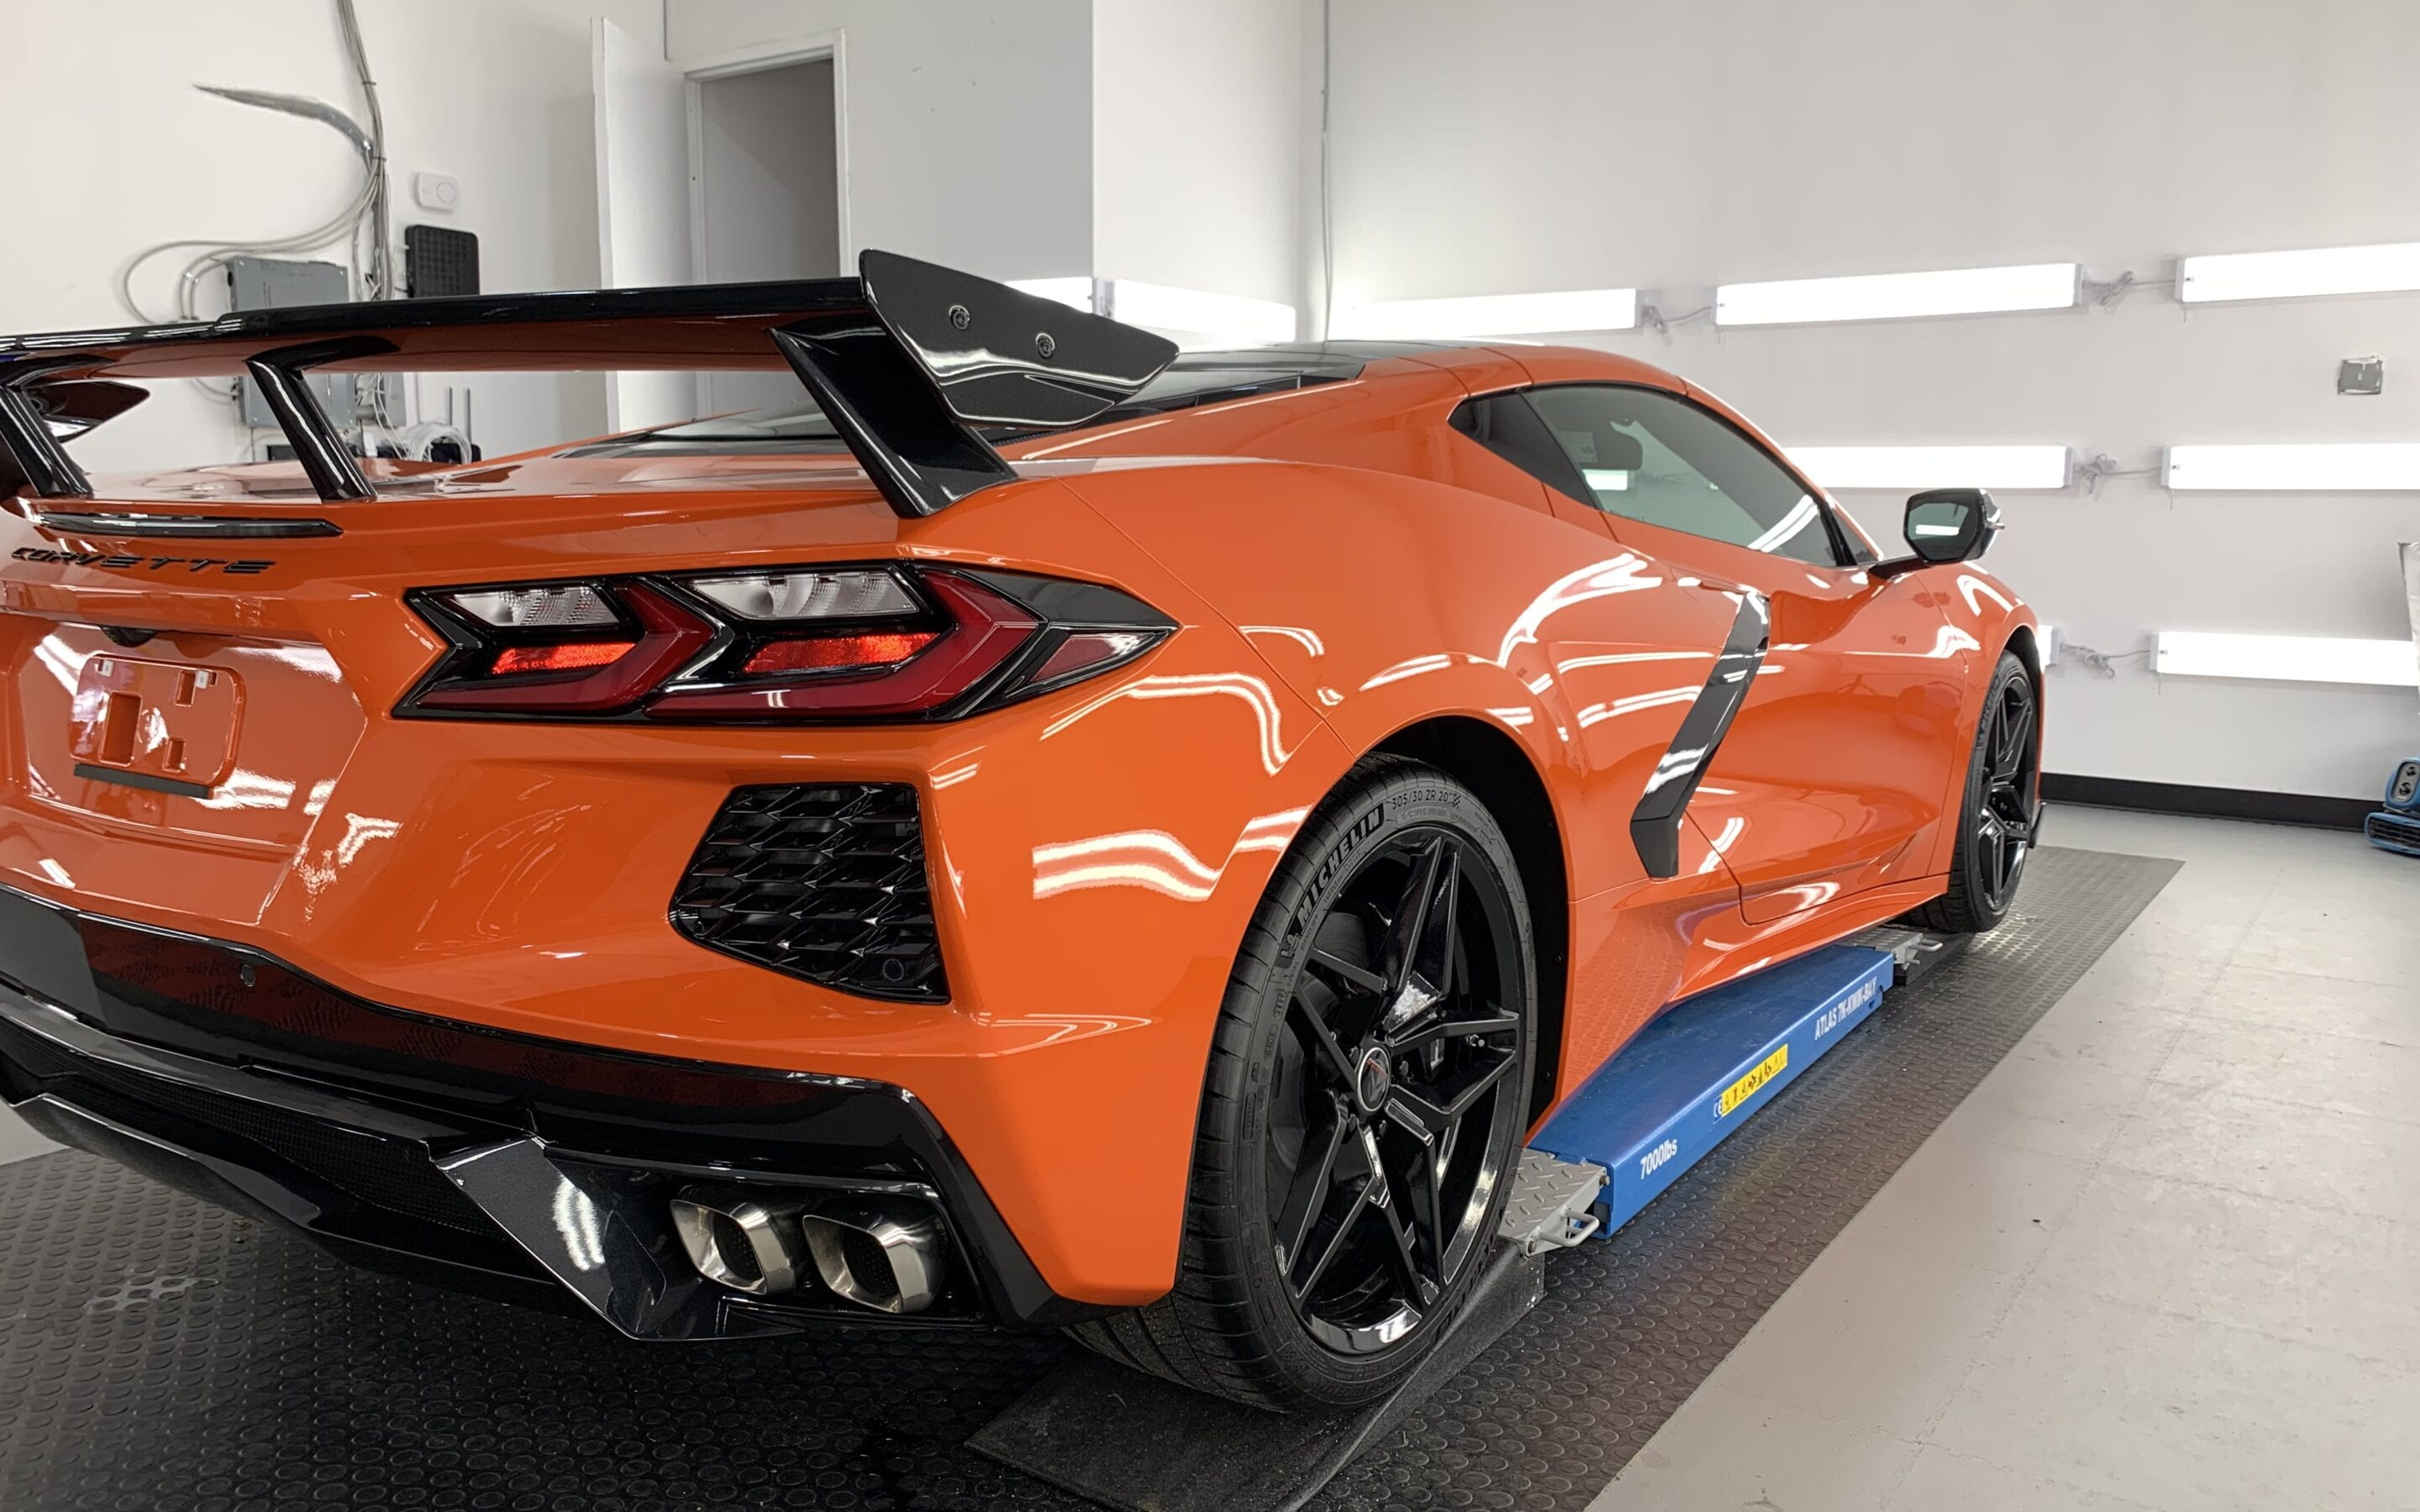 New Car Preparation of a 2020 Chevrolet Corvette